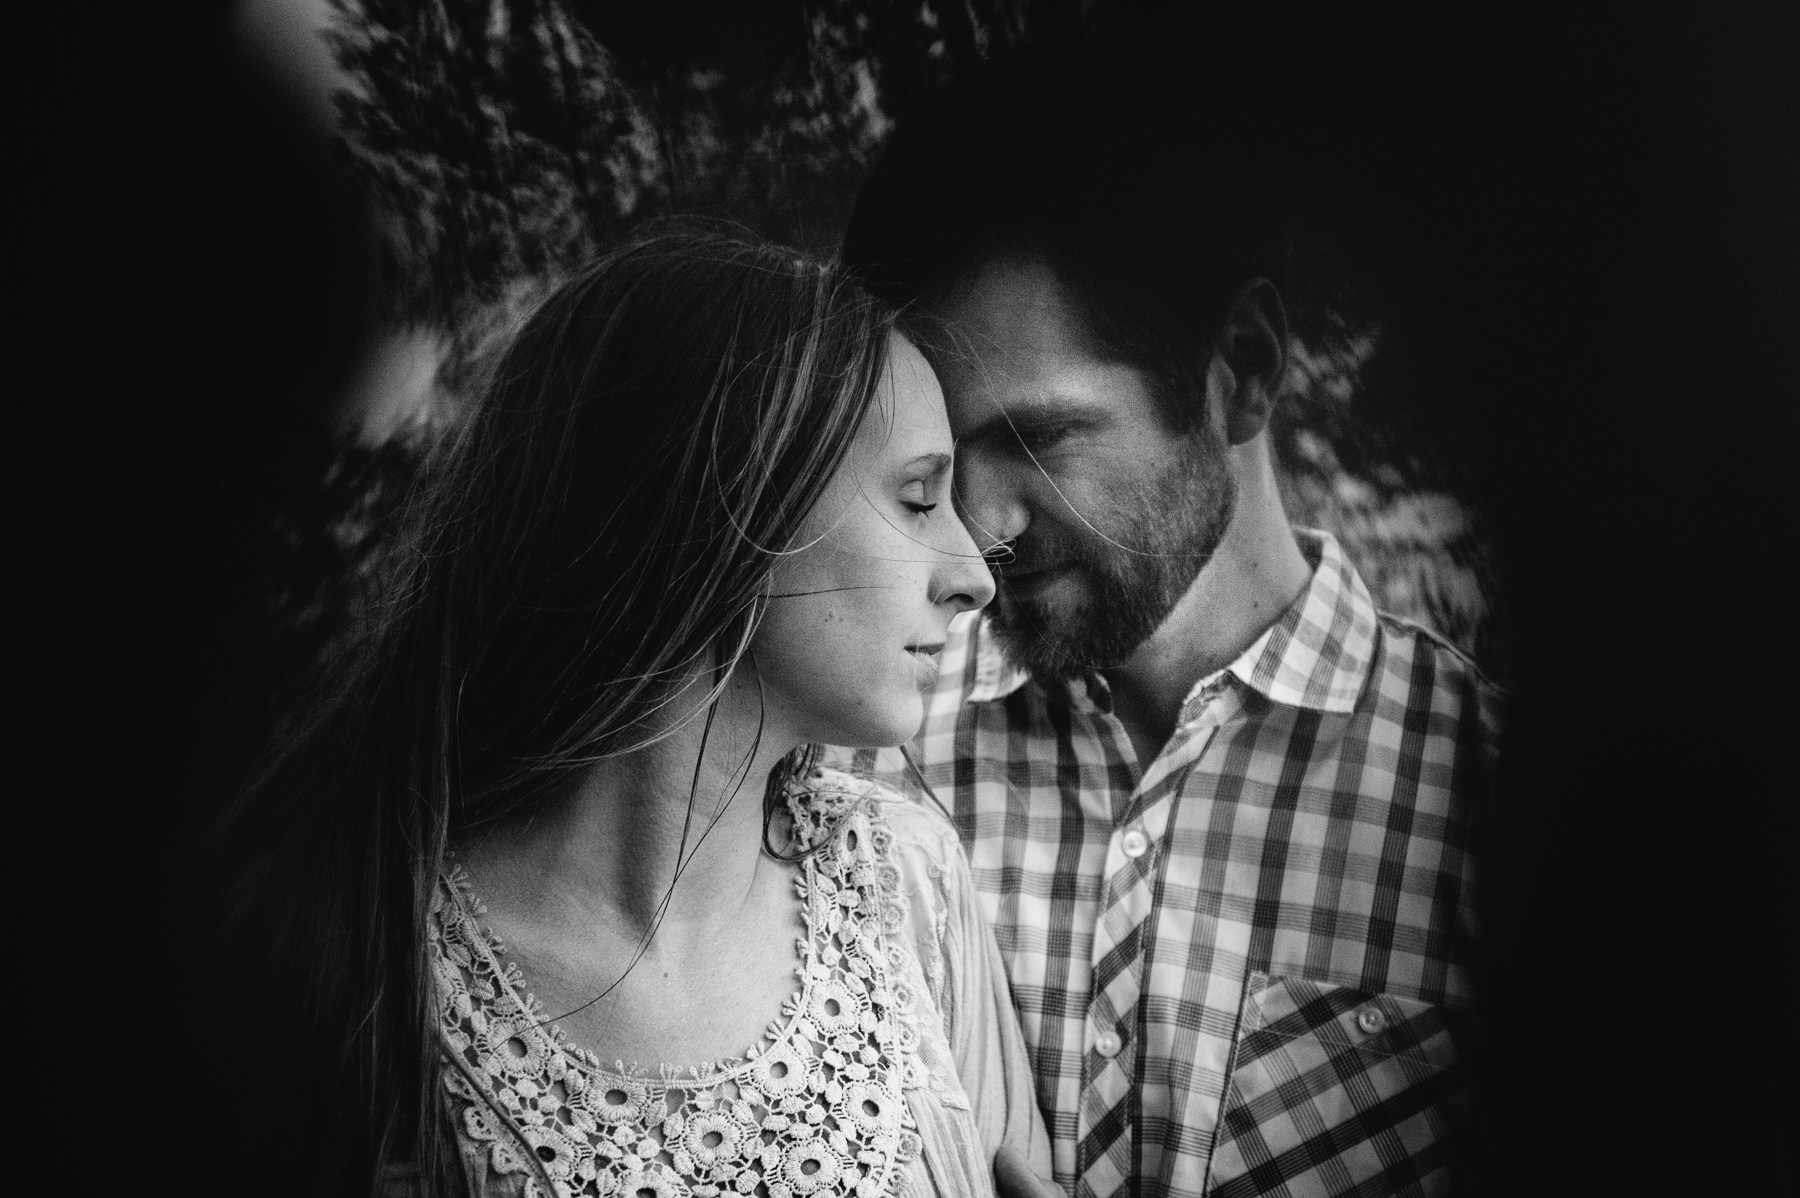 seattle-wedding-photographer-engagement-sessions-best-9